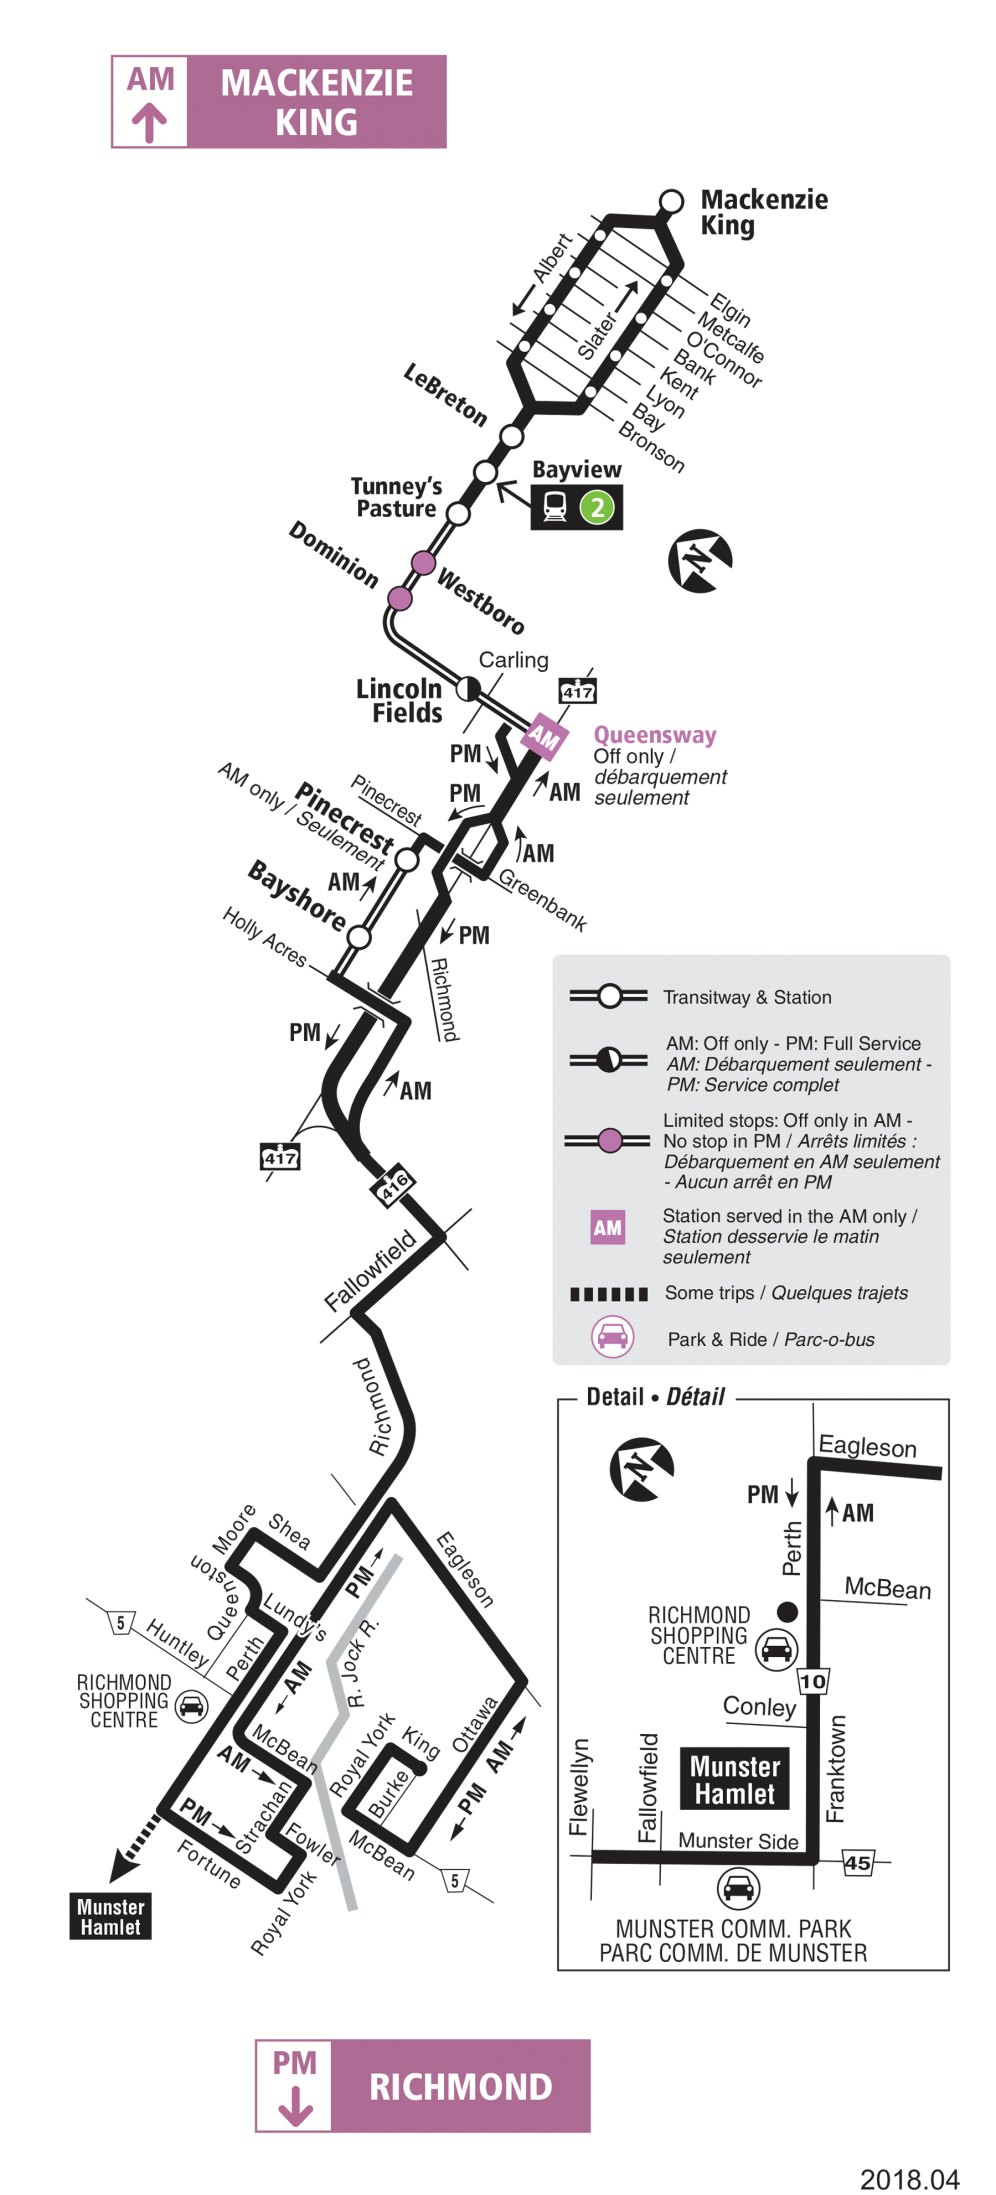 Route 283 map